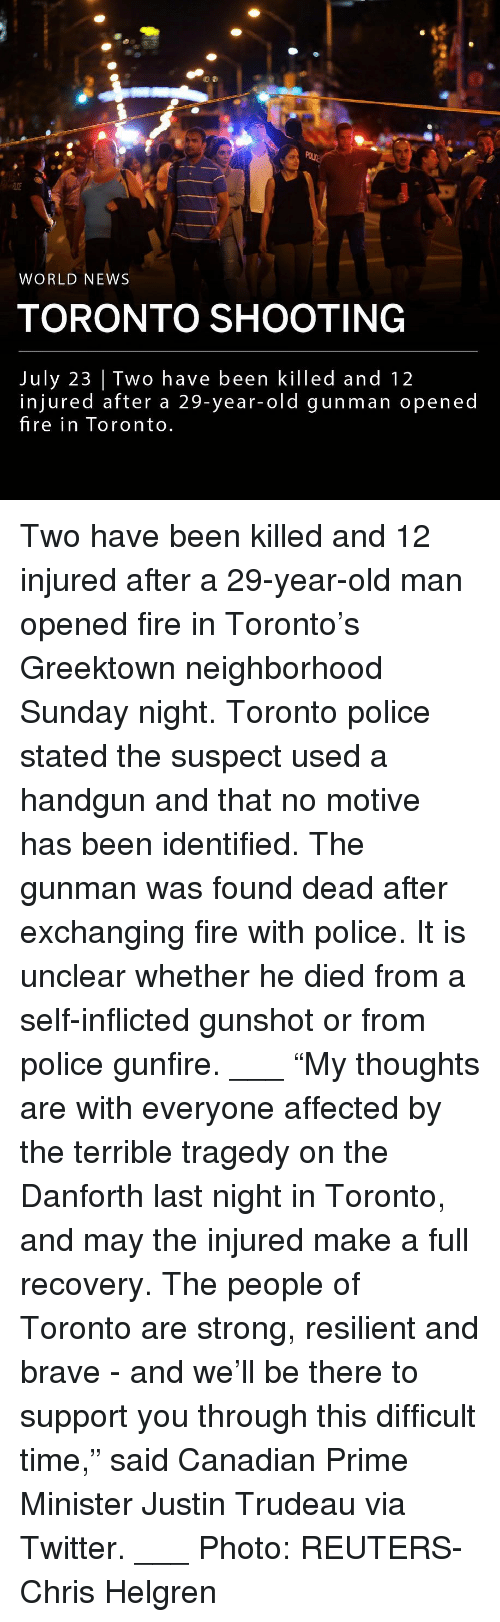 "Fire, Memes, and News: WORLD NEWS  TORONTO SHOOTING  July 23 | Two have been killed and 12  injured after a 29-year-old gunman opened  fire in Toronto Two have been killed and 12 injured after a 29-year-old man opened fire in Toronto's Greektown neighborhood Sunday night. Toronto police stated the suspect used a handgun and that no motive has been identified. The gunman was found dead after exchanging fire with police. It is unclear whether he died from a self-inflicted gunshot or from police gunfire. ___ ""My thoughts are with everyone affected by the terrible tragedy on the Danforth last night in Toronto, and may the injured make a full recovery. The people of Toronto are strong, resilient and brave - and we'll be there to support you through this difficult time,"" said Canadian Prime Minister Justin Trudeau via Twitter. ___ Photo: REUTERS-Chris Helgren"